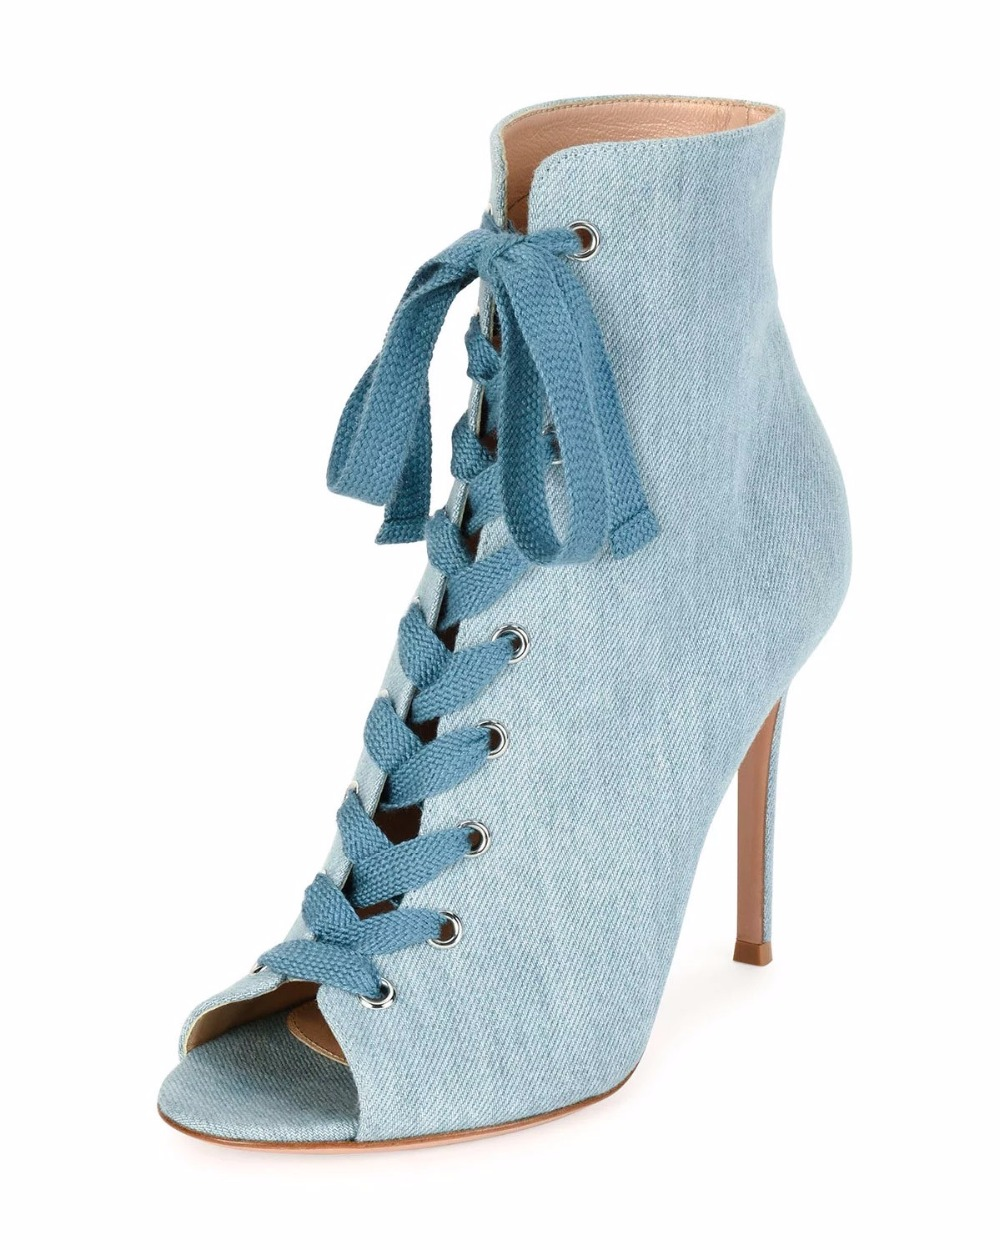 2017 Spring women fashion jeans shoes super high heels peep toe women sexy blue denim high heel dress shoes lace up heels